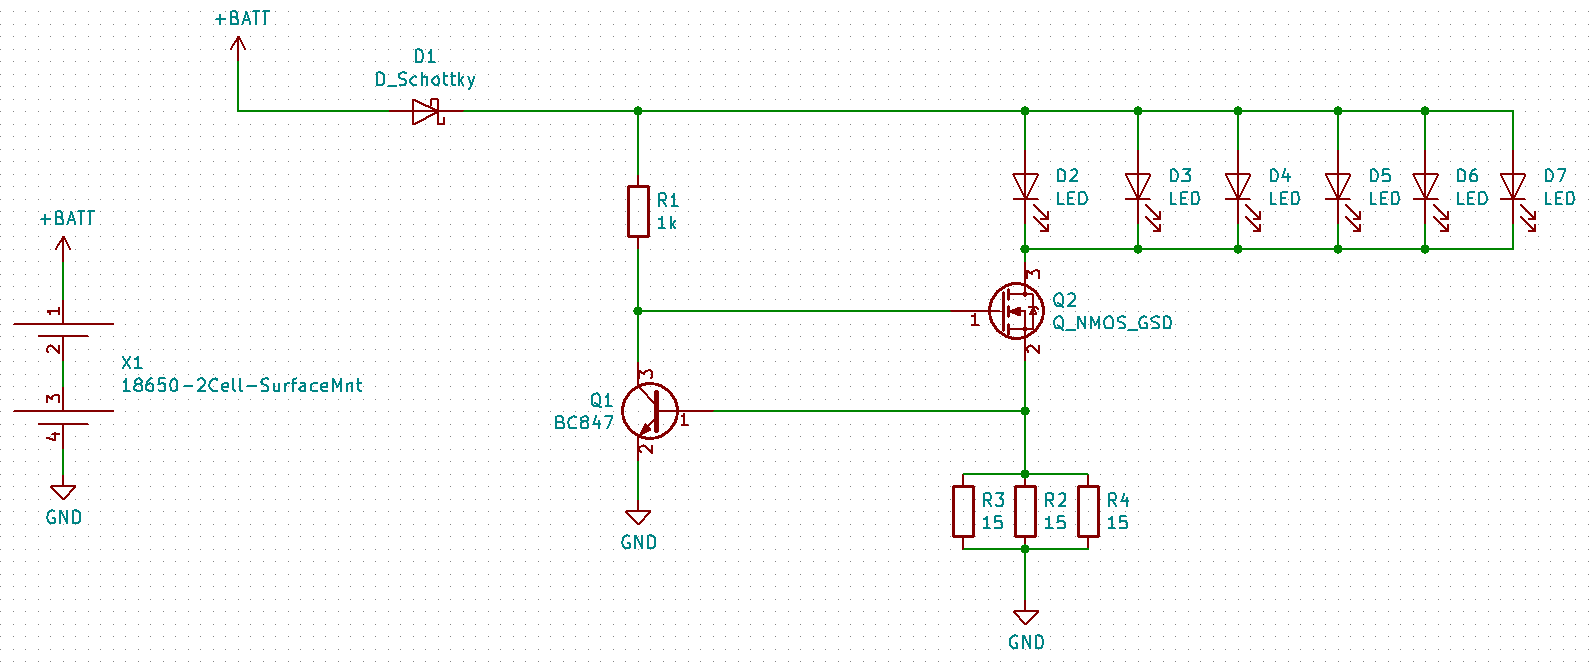 hight resolution of i ve ordered the pcb already with two sets of mounting holes i did order one box but i m not sure if it will work out now that i see it schematic